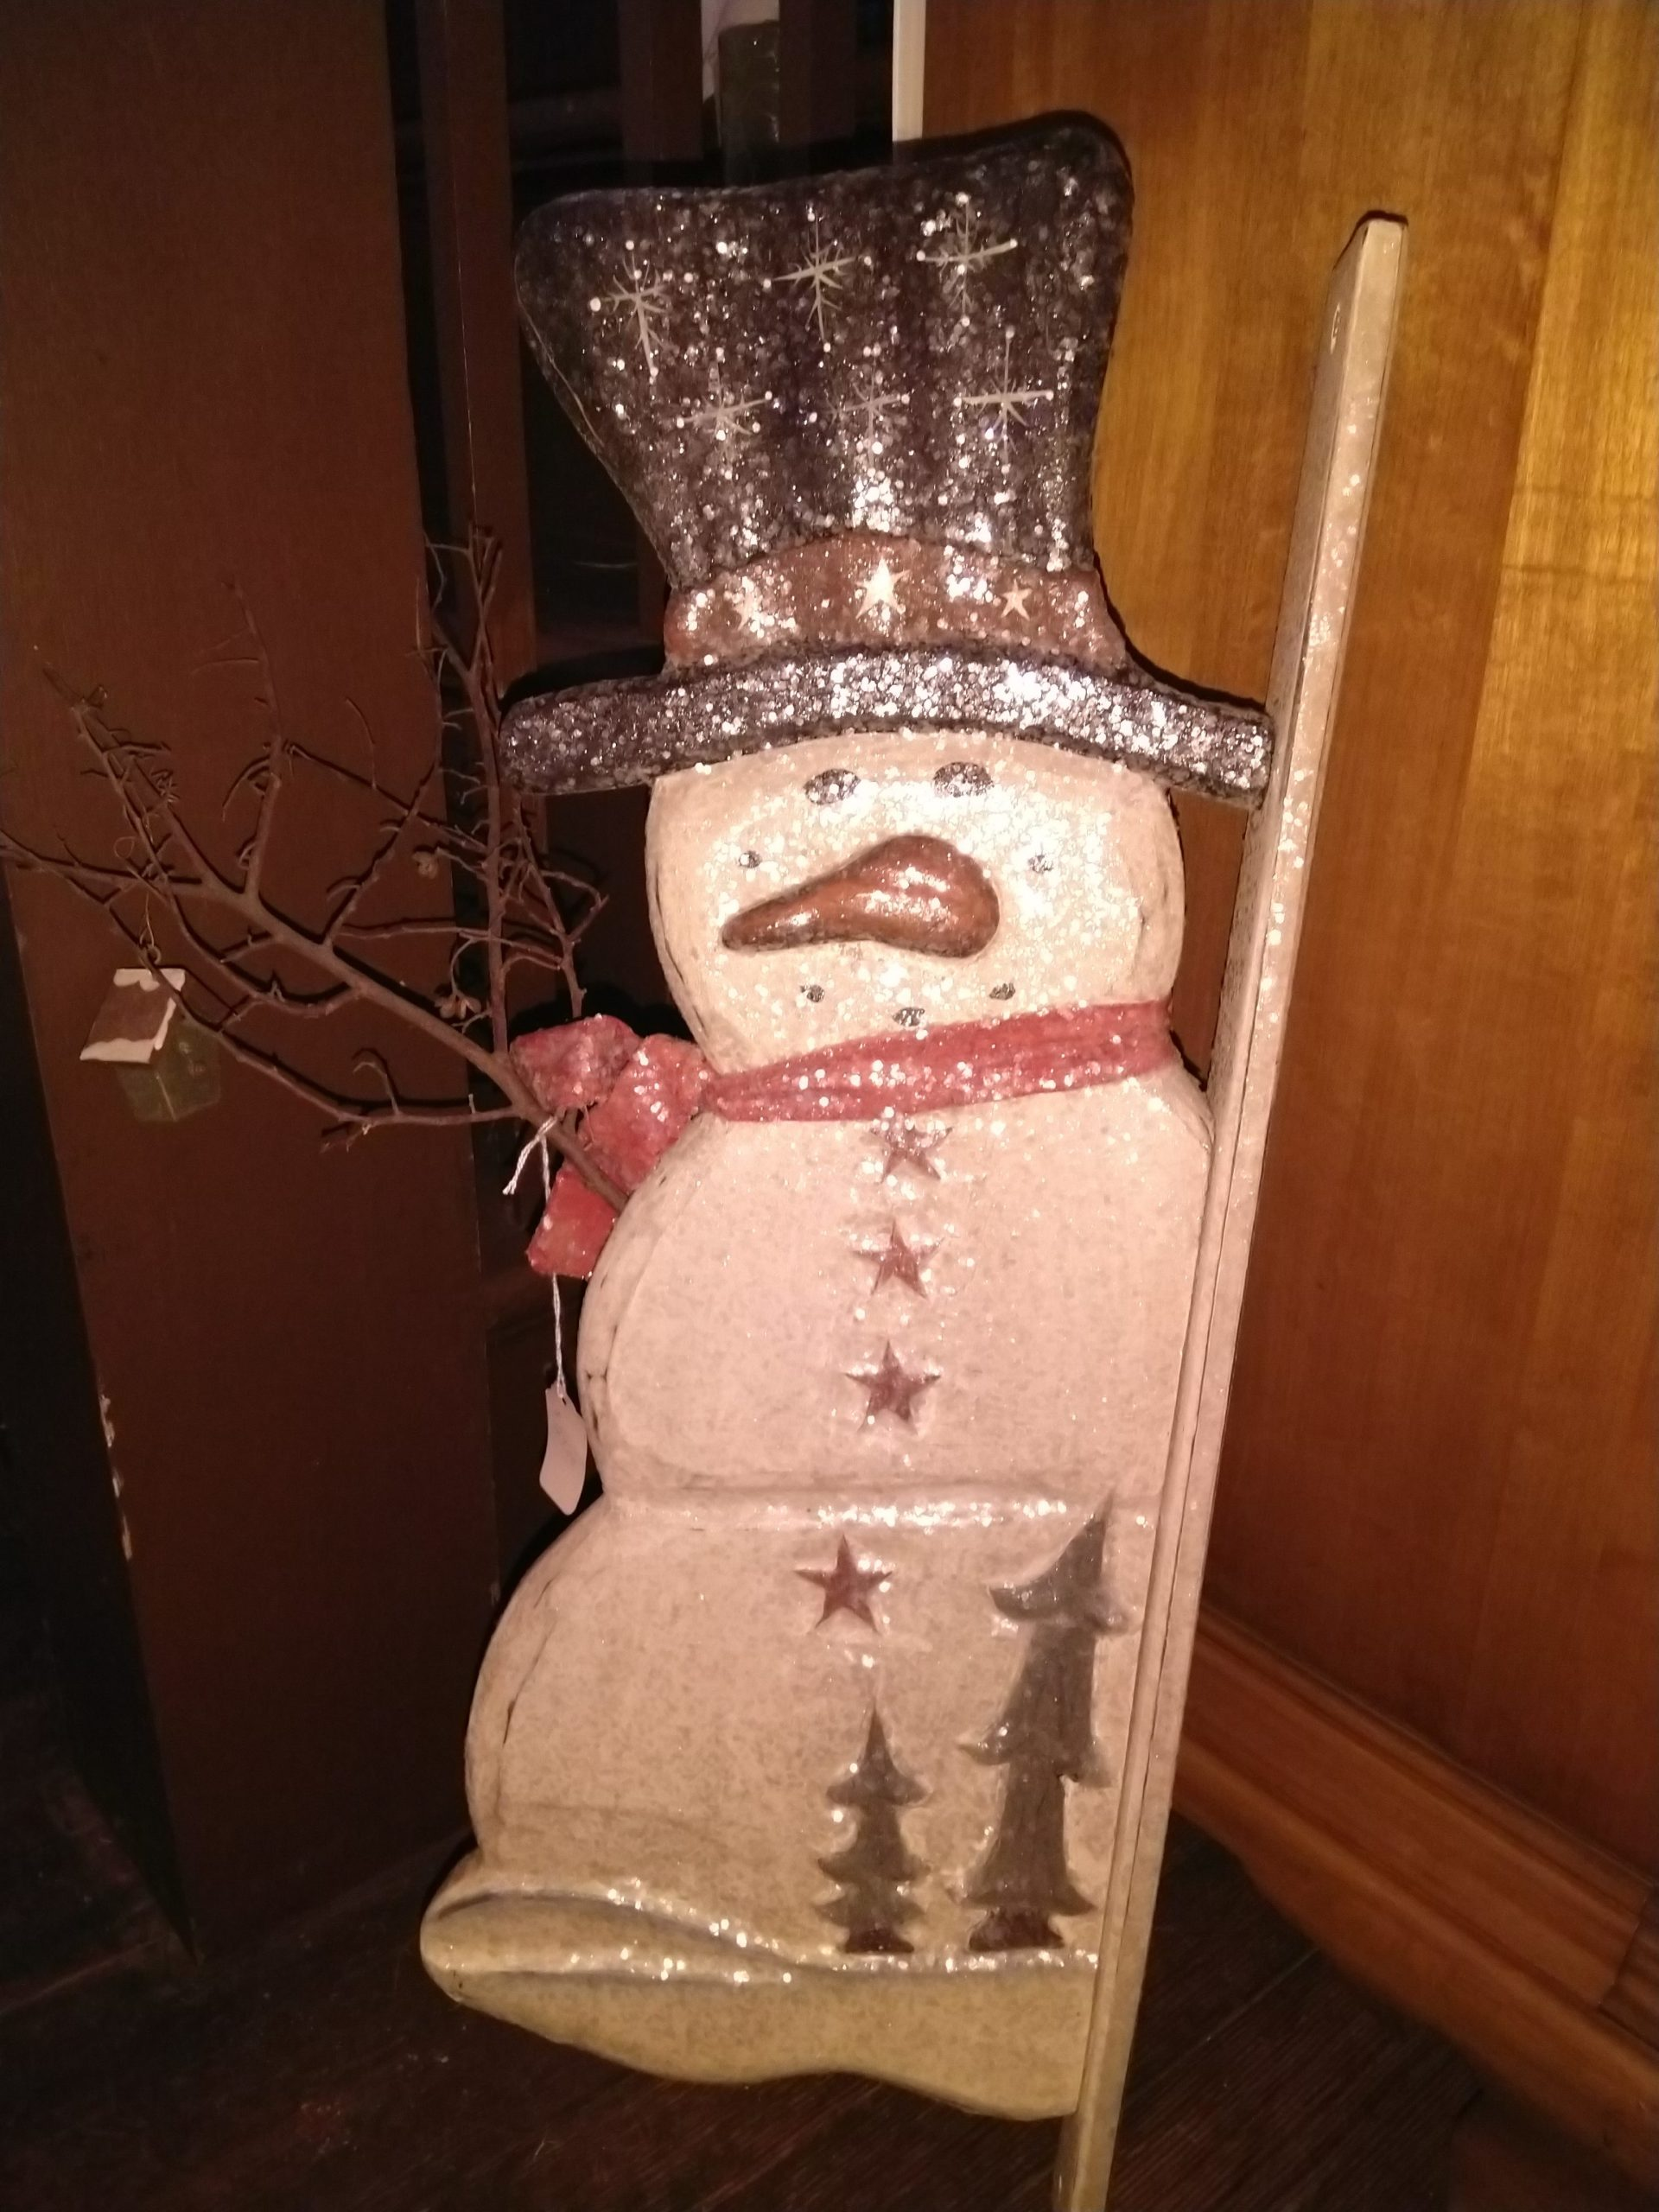 Snowman Decor in the Gift Shop